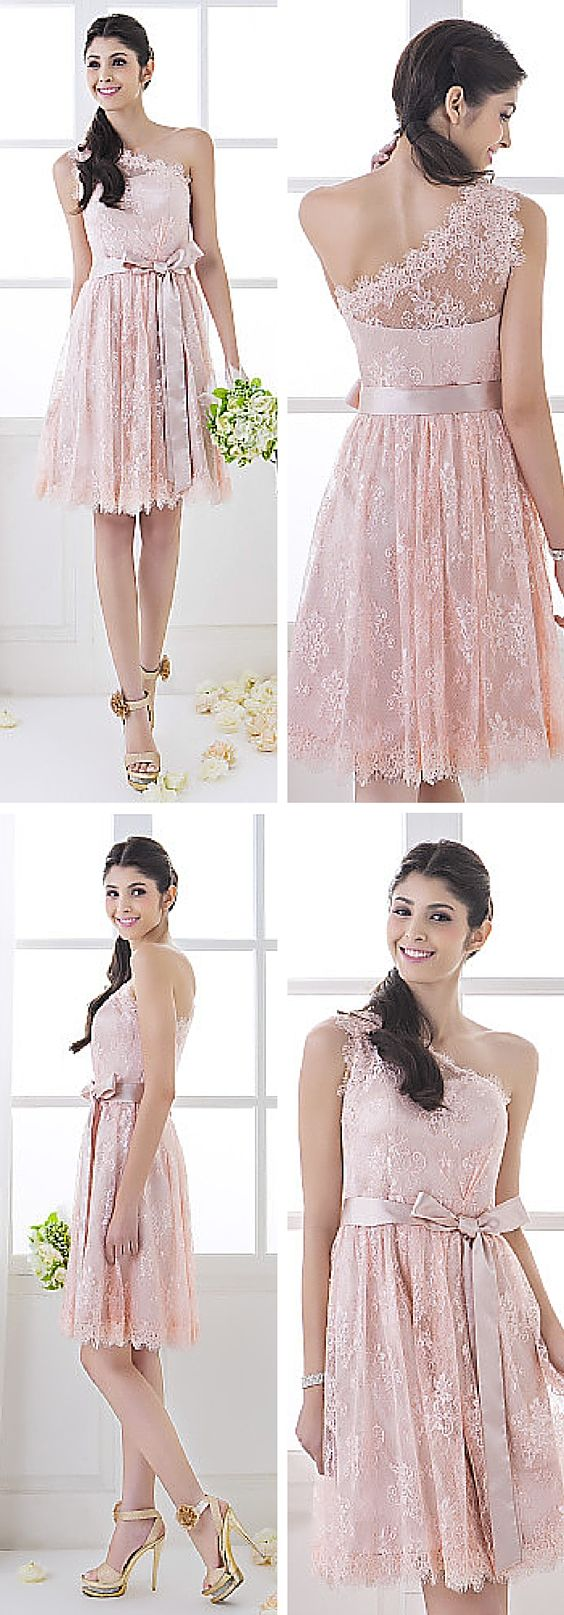 One-shoulder lace bridesmaid dress! Such a lovely and feminine choice. This dress is an affordable way to get custom made bridesmaid dresses in your choice of 32 colors.